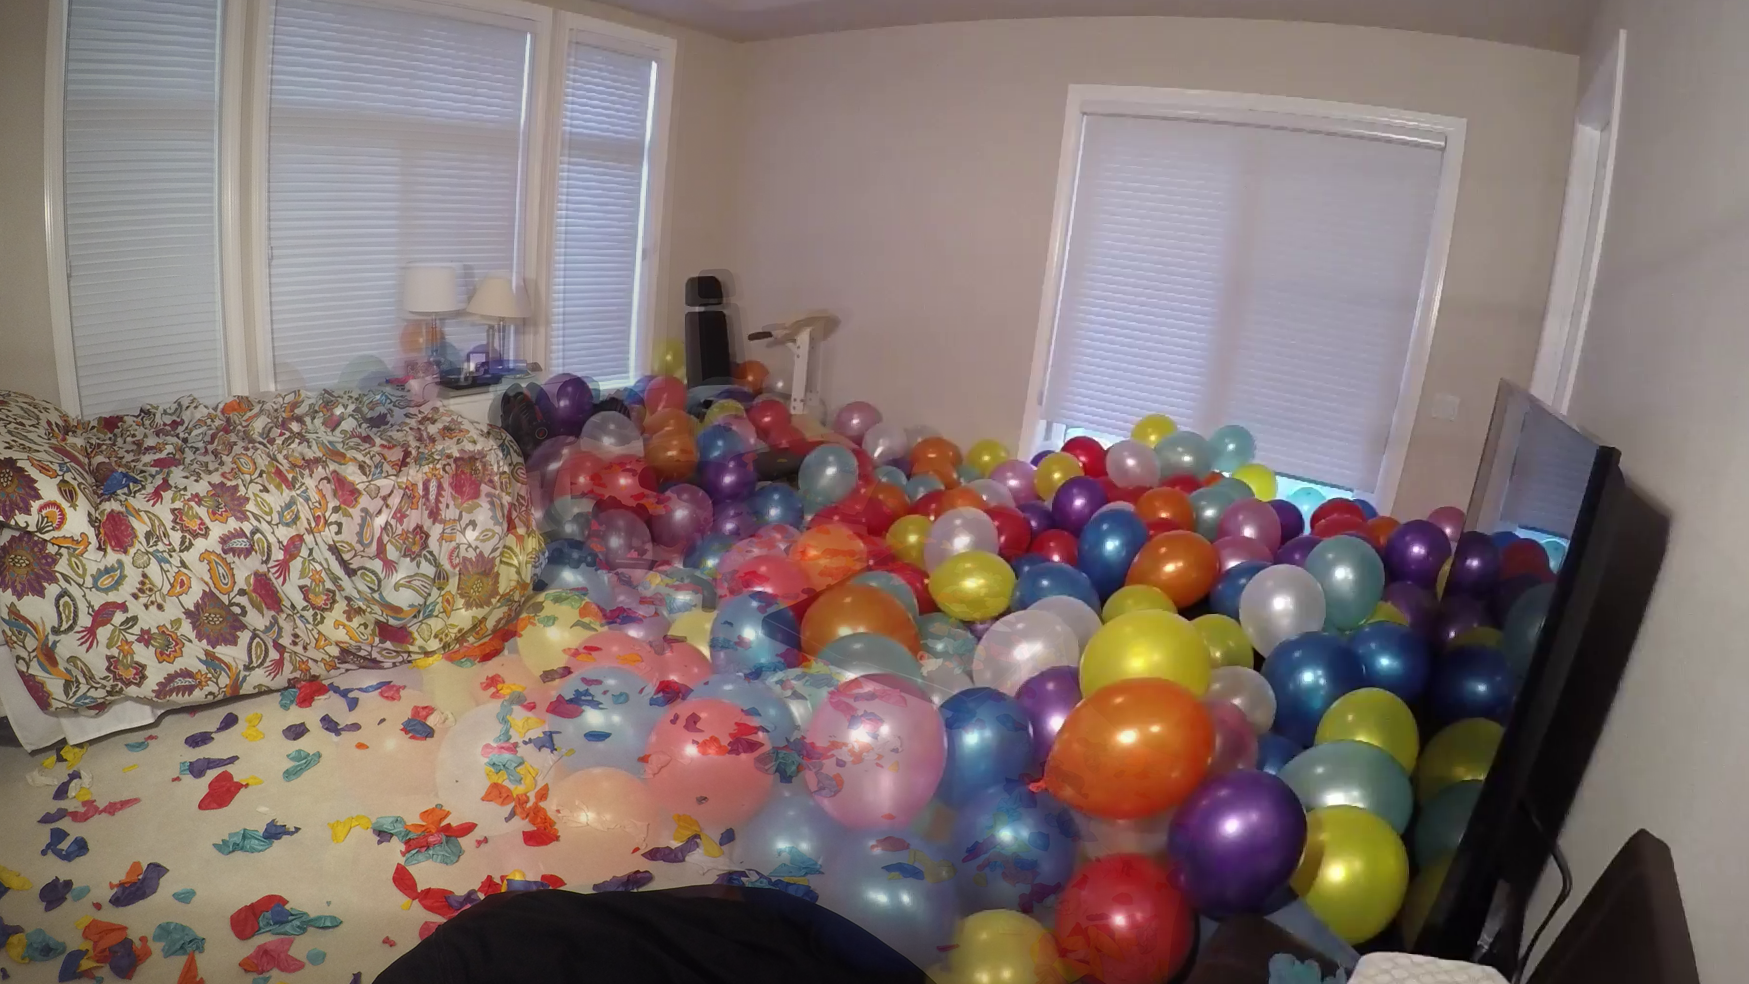 Before and after popping 700 balloons